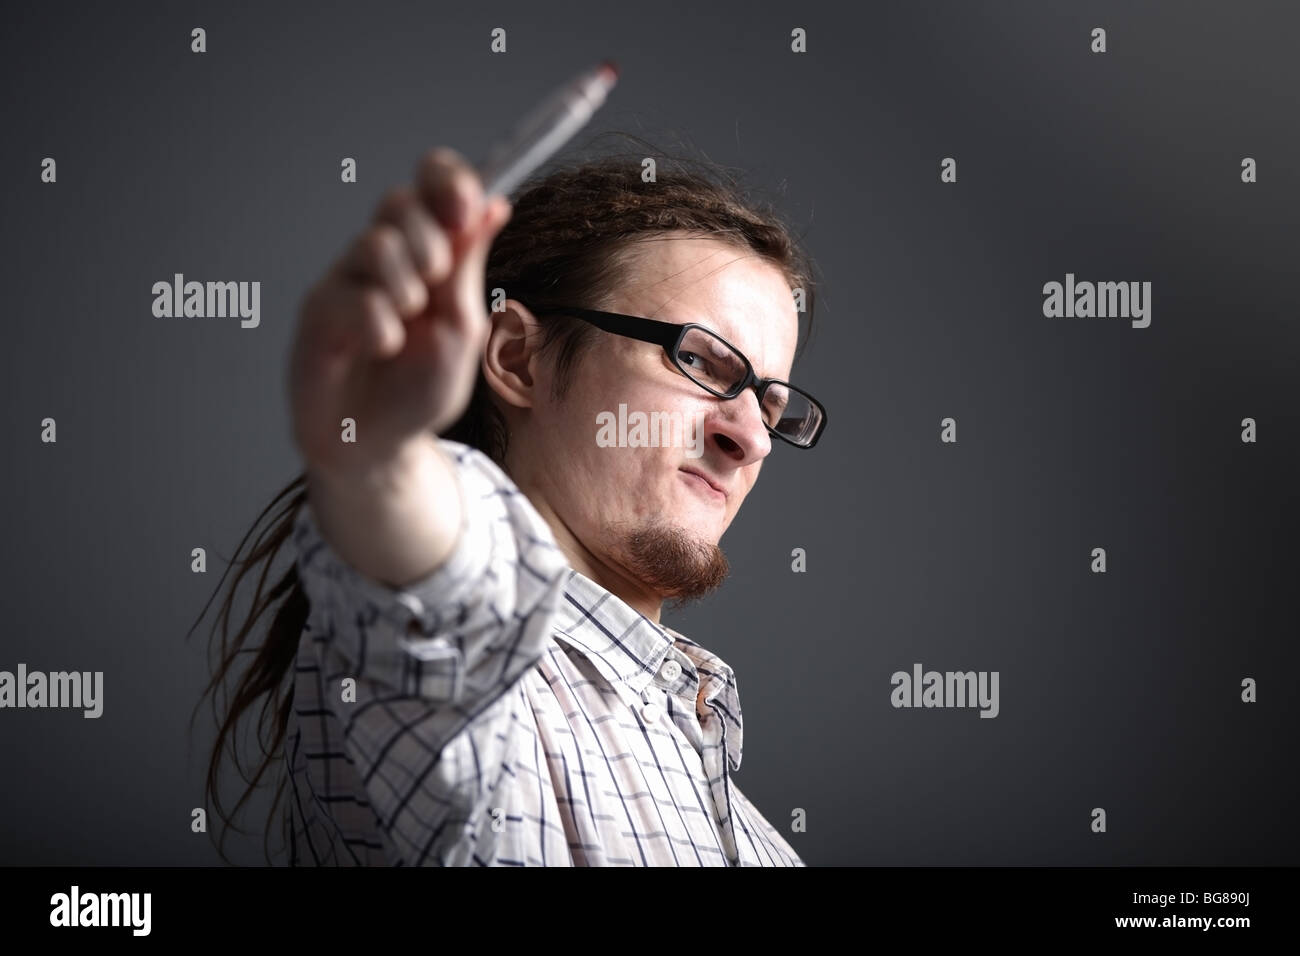 longhaired eccentric man in glasses makes a gesture of holding a marker - Stock Image